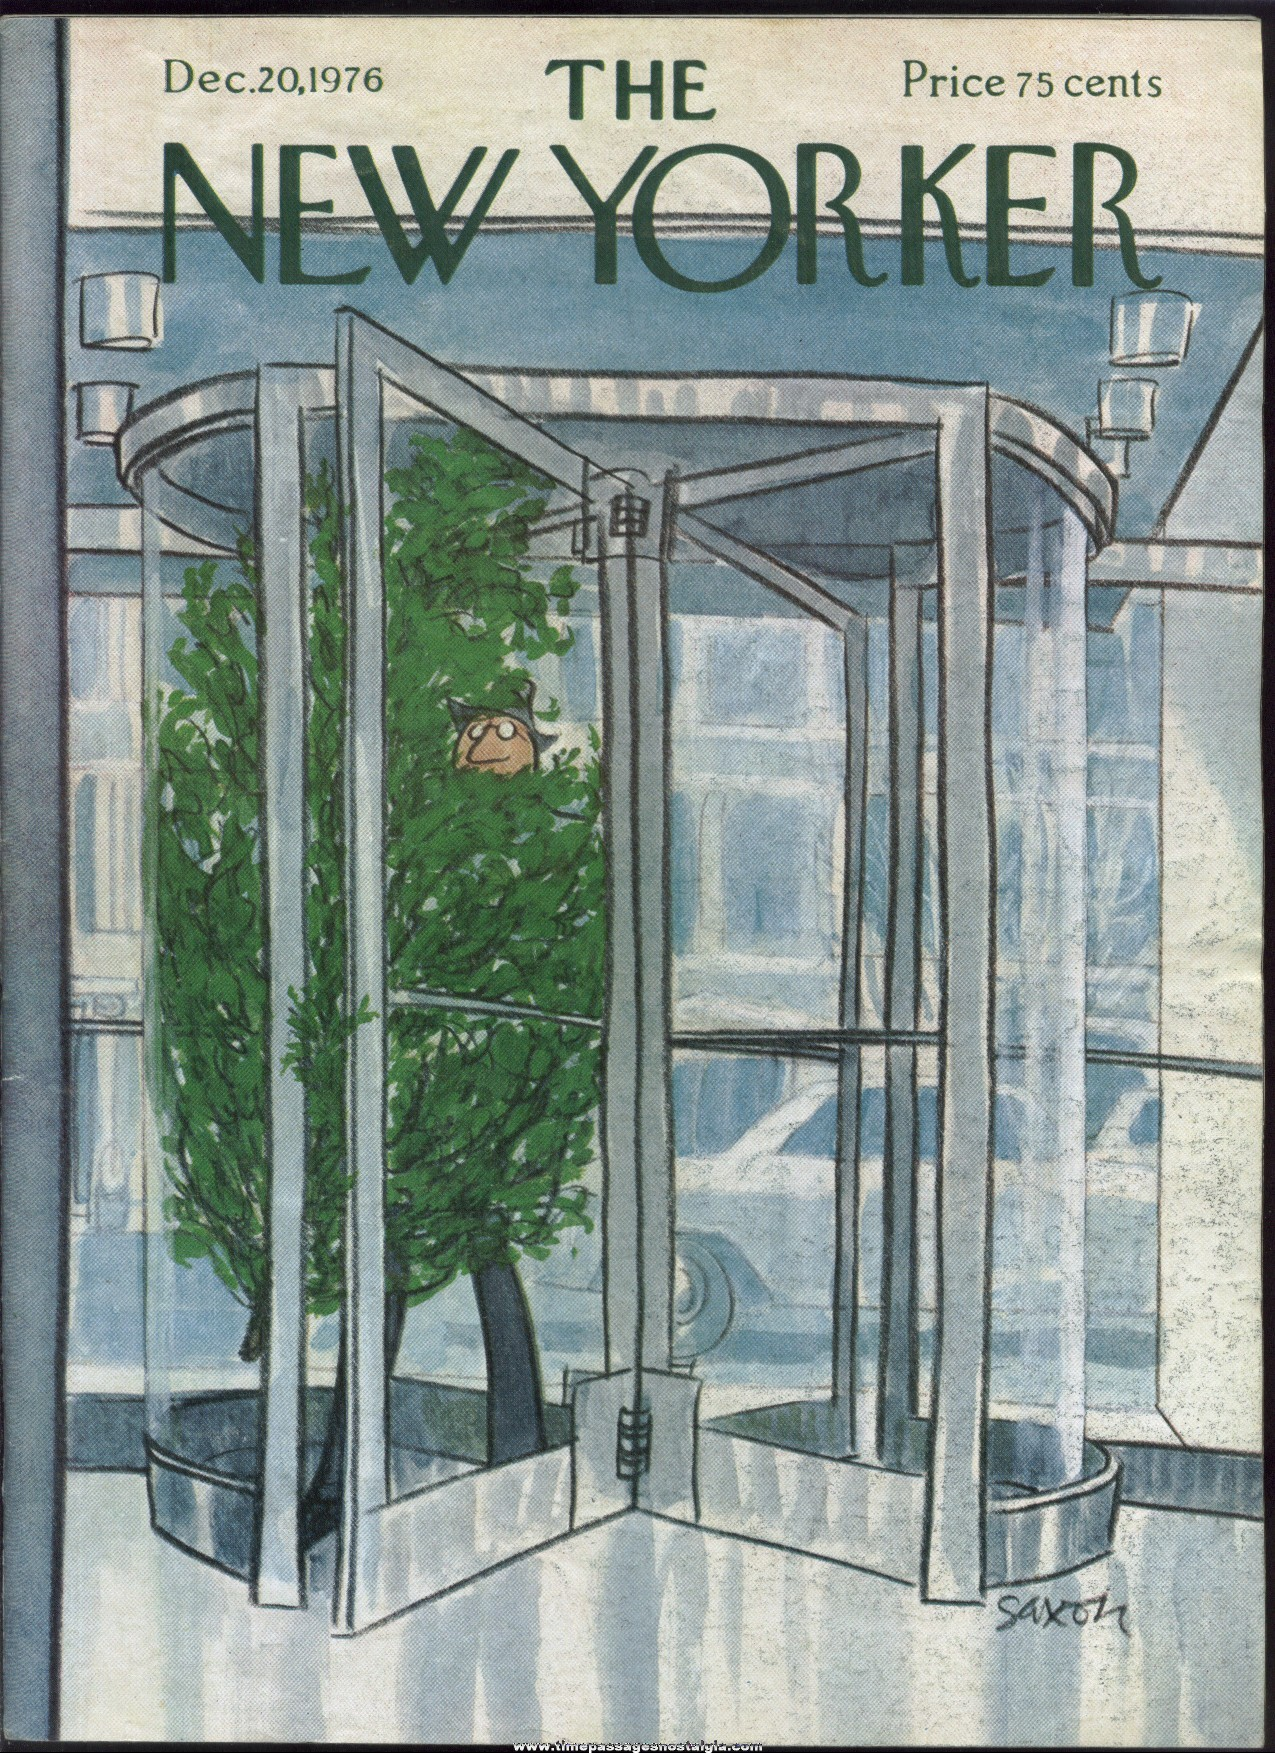 New Yorker Magazine - December 20, 1976 - Cover by Charles Saxon